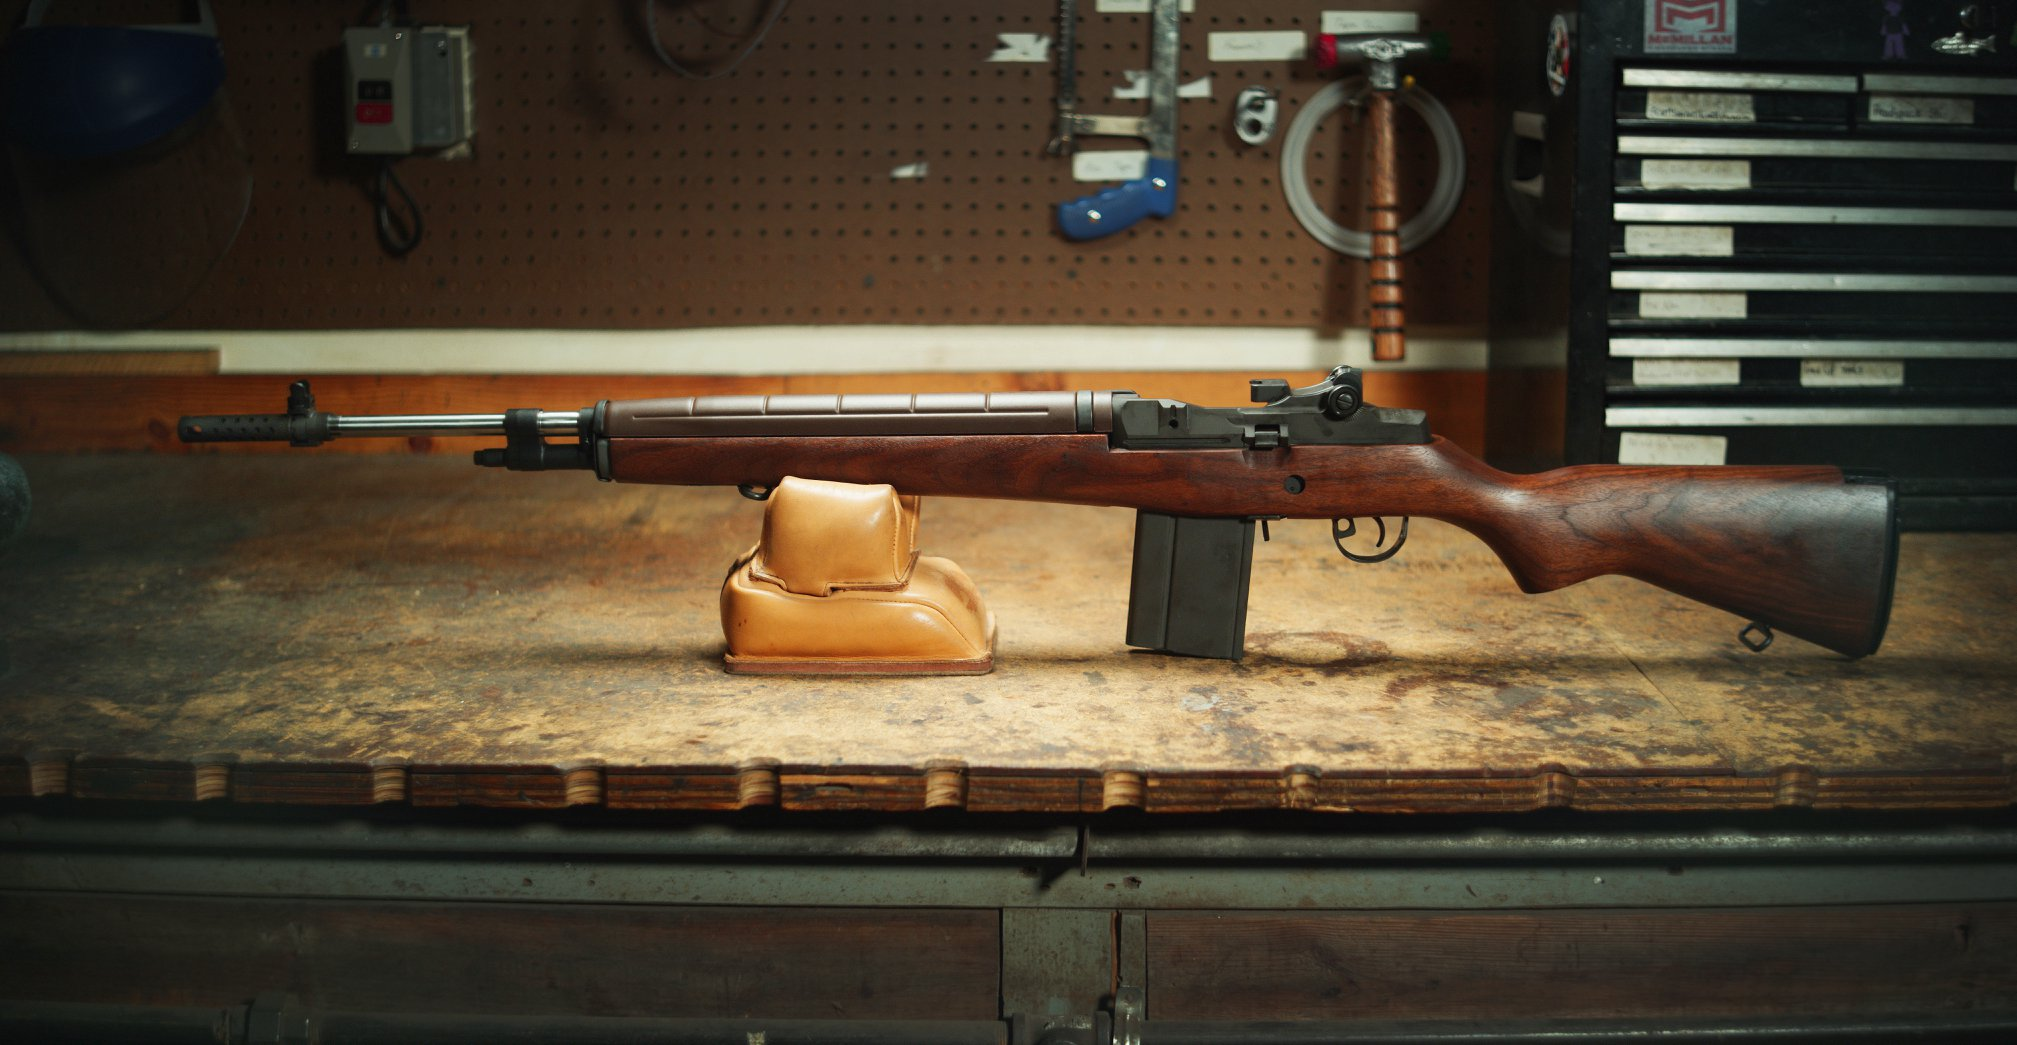 Springfield Armory Celebrates the Legendary M1A Series with a Behind-the-Scenes Video